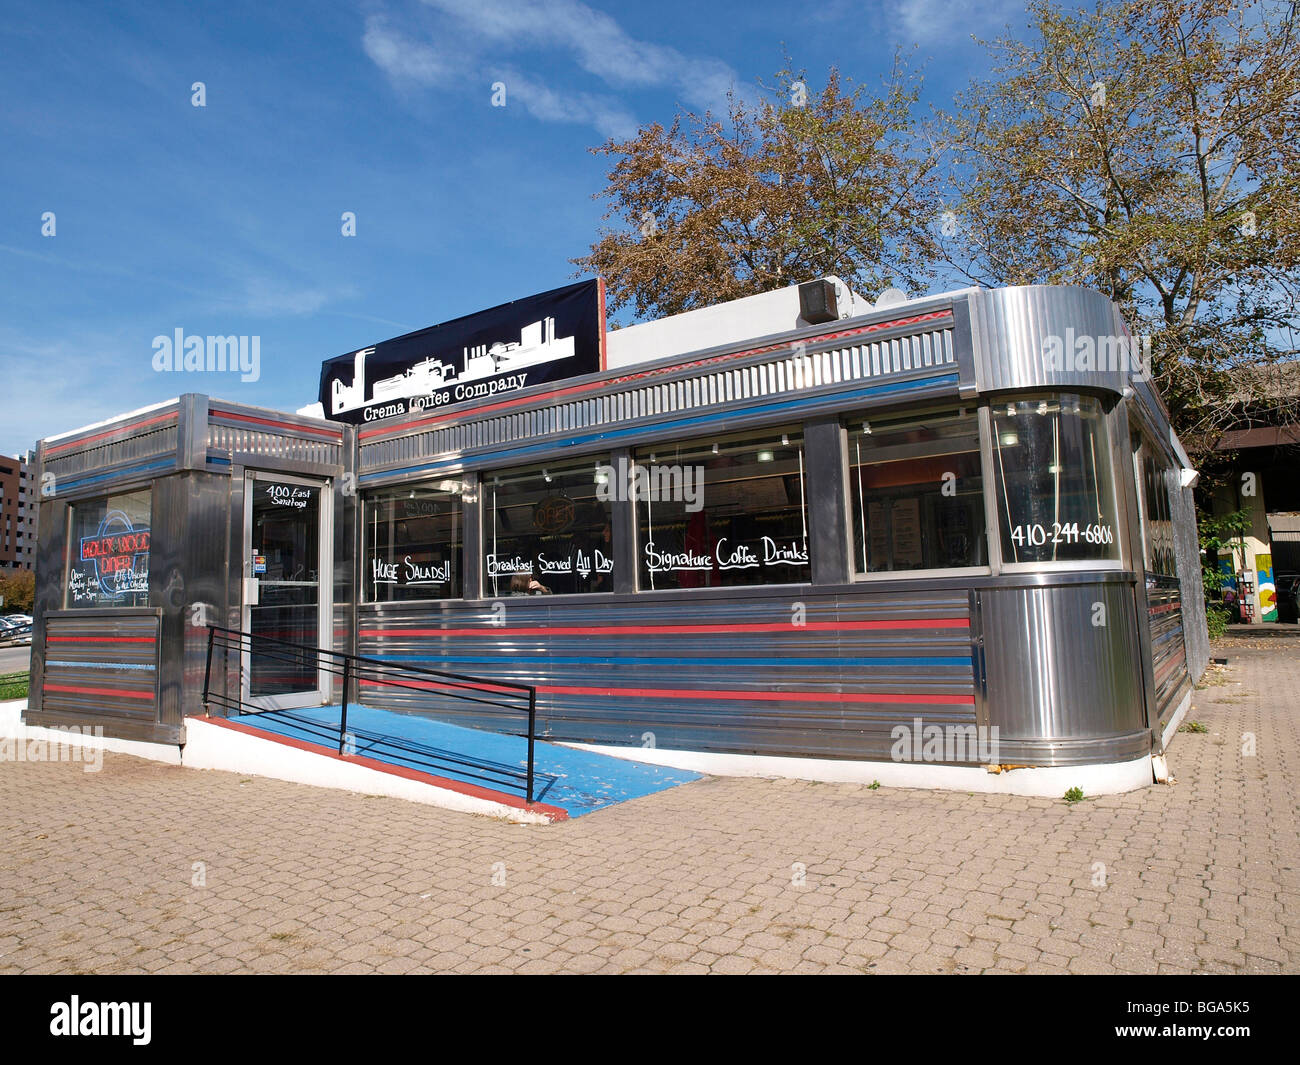 The Hollywood Diner featured in films such as Barry Levinson's 'Diner' and 'Liberty Heights' - Stock Image